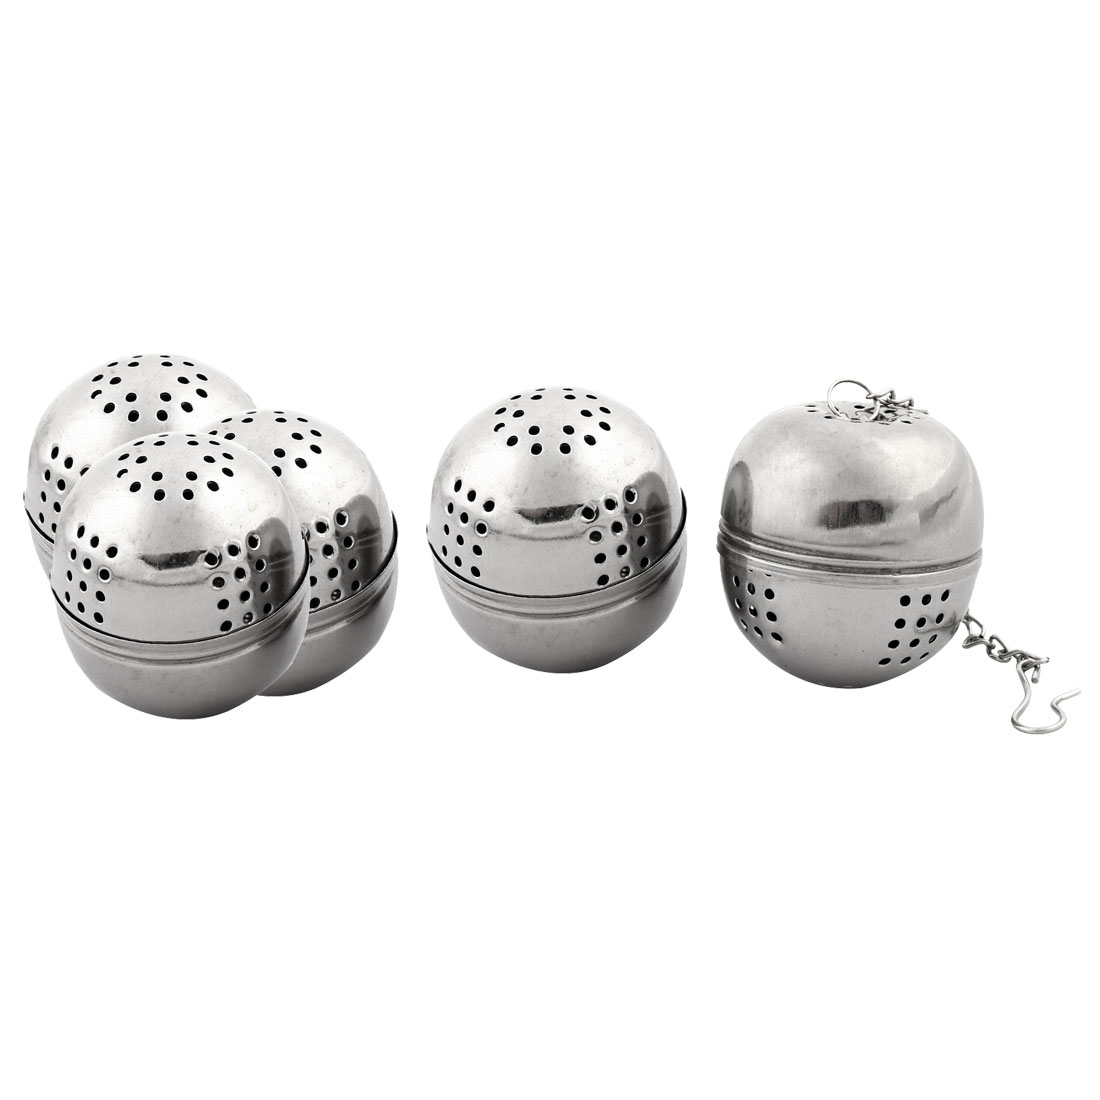 Stainless Steel Leaf Tea Spice Perfume Infuser Strainer Ball 4cm Dia 5 PCS